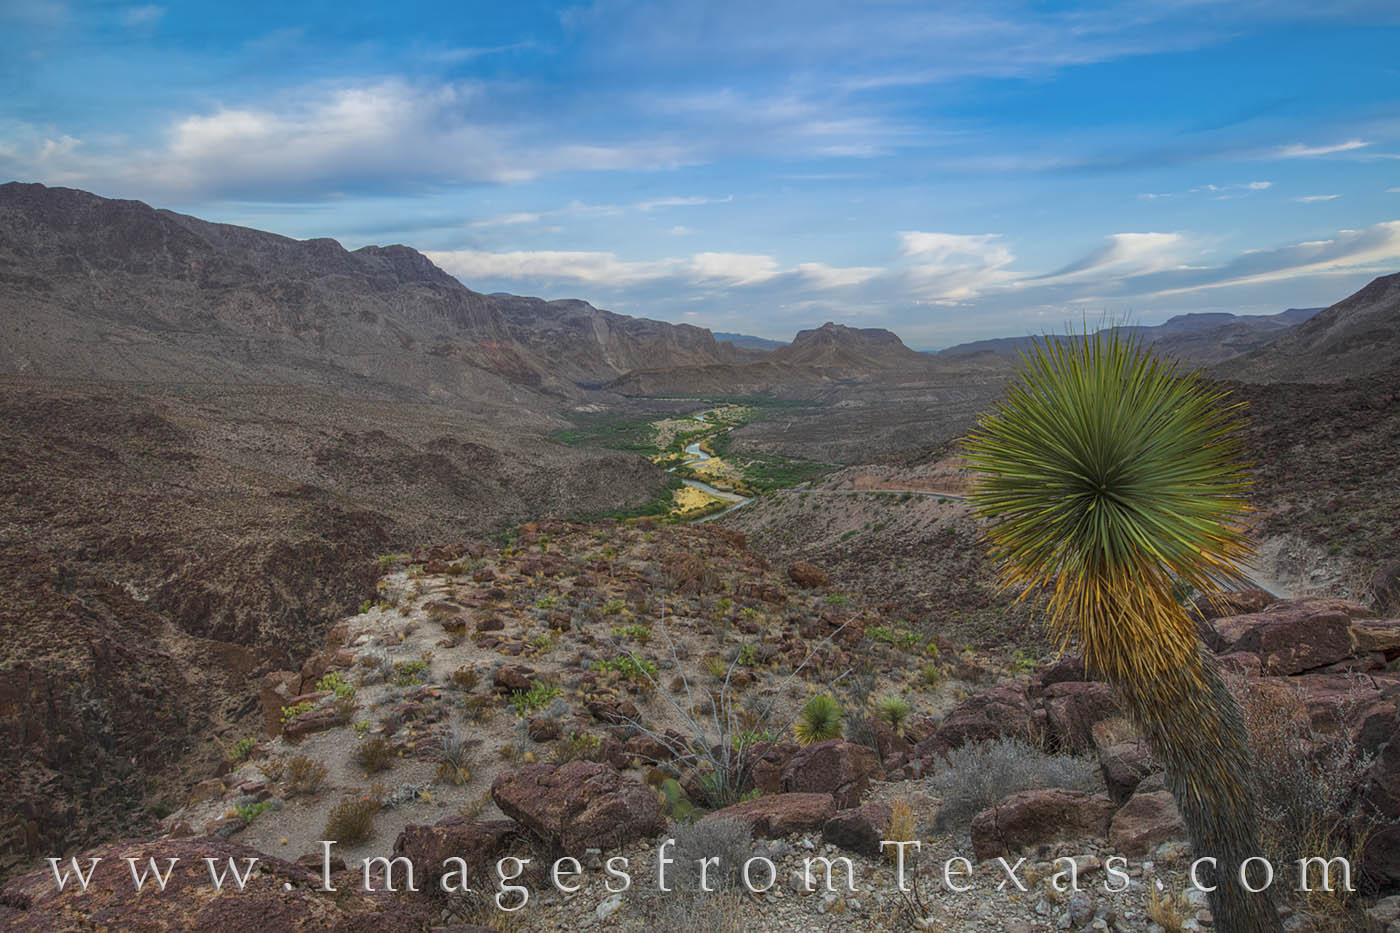 big bend ranch, big hill, FM 170, rio grande, west texas, presidio, lajitas, texas landscapes, vistas, west texas image, big bend, photo